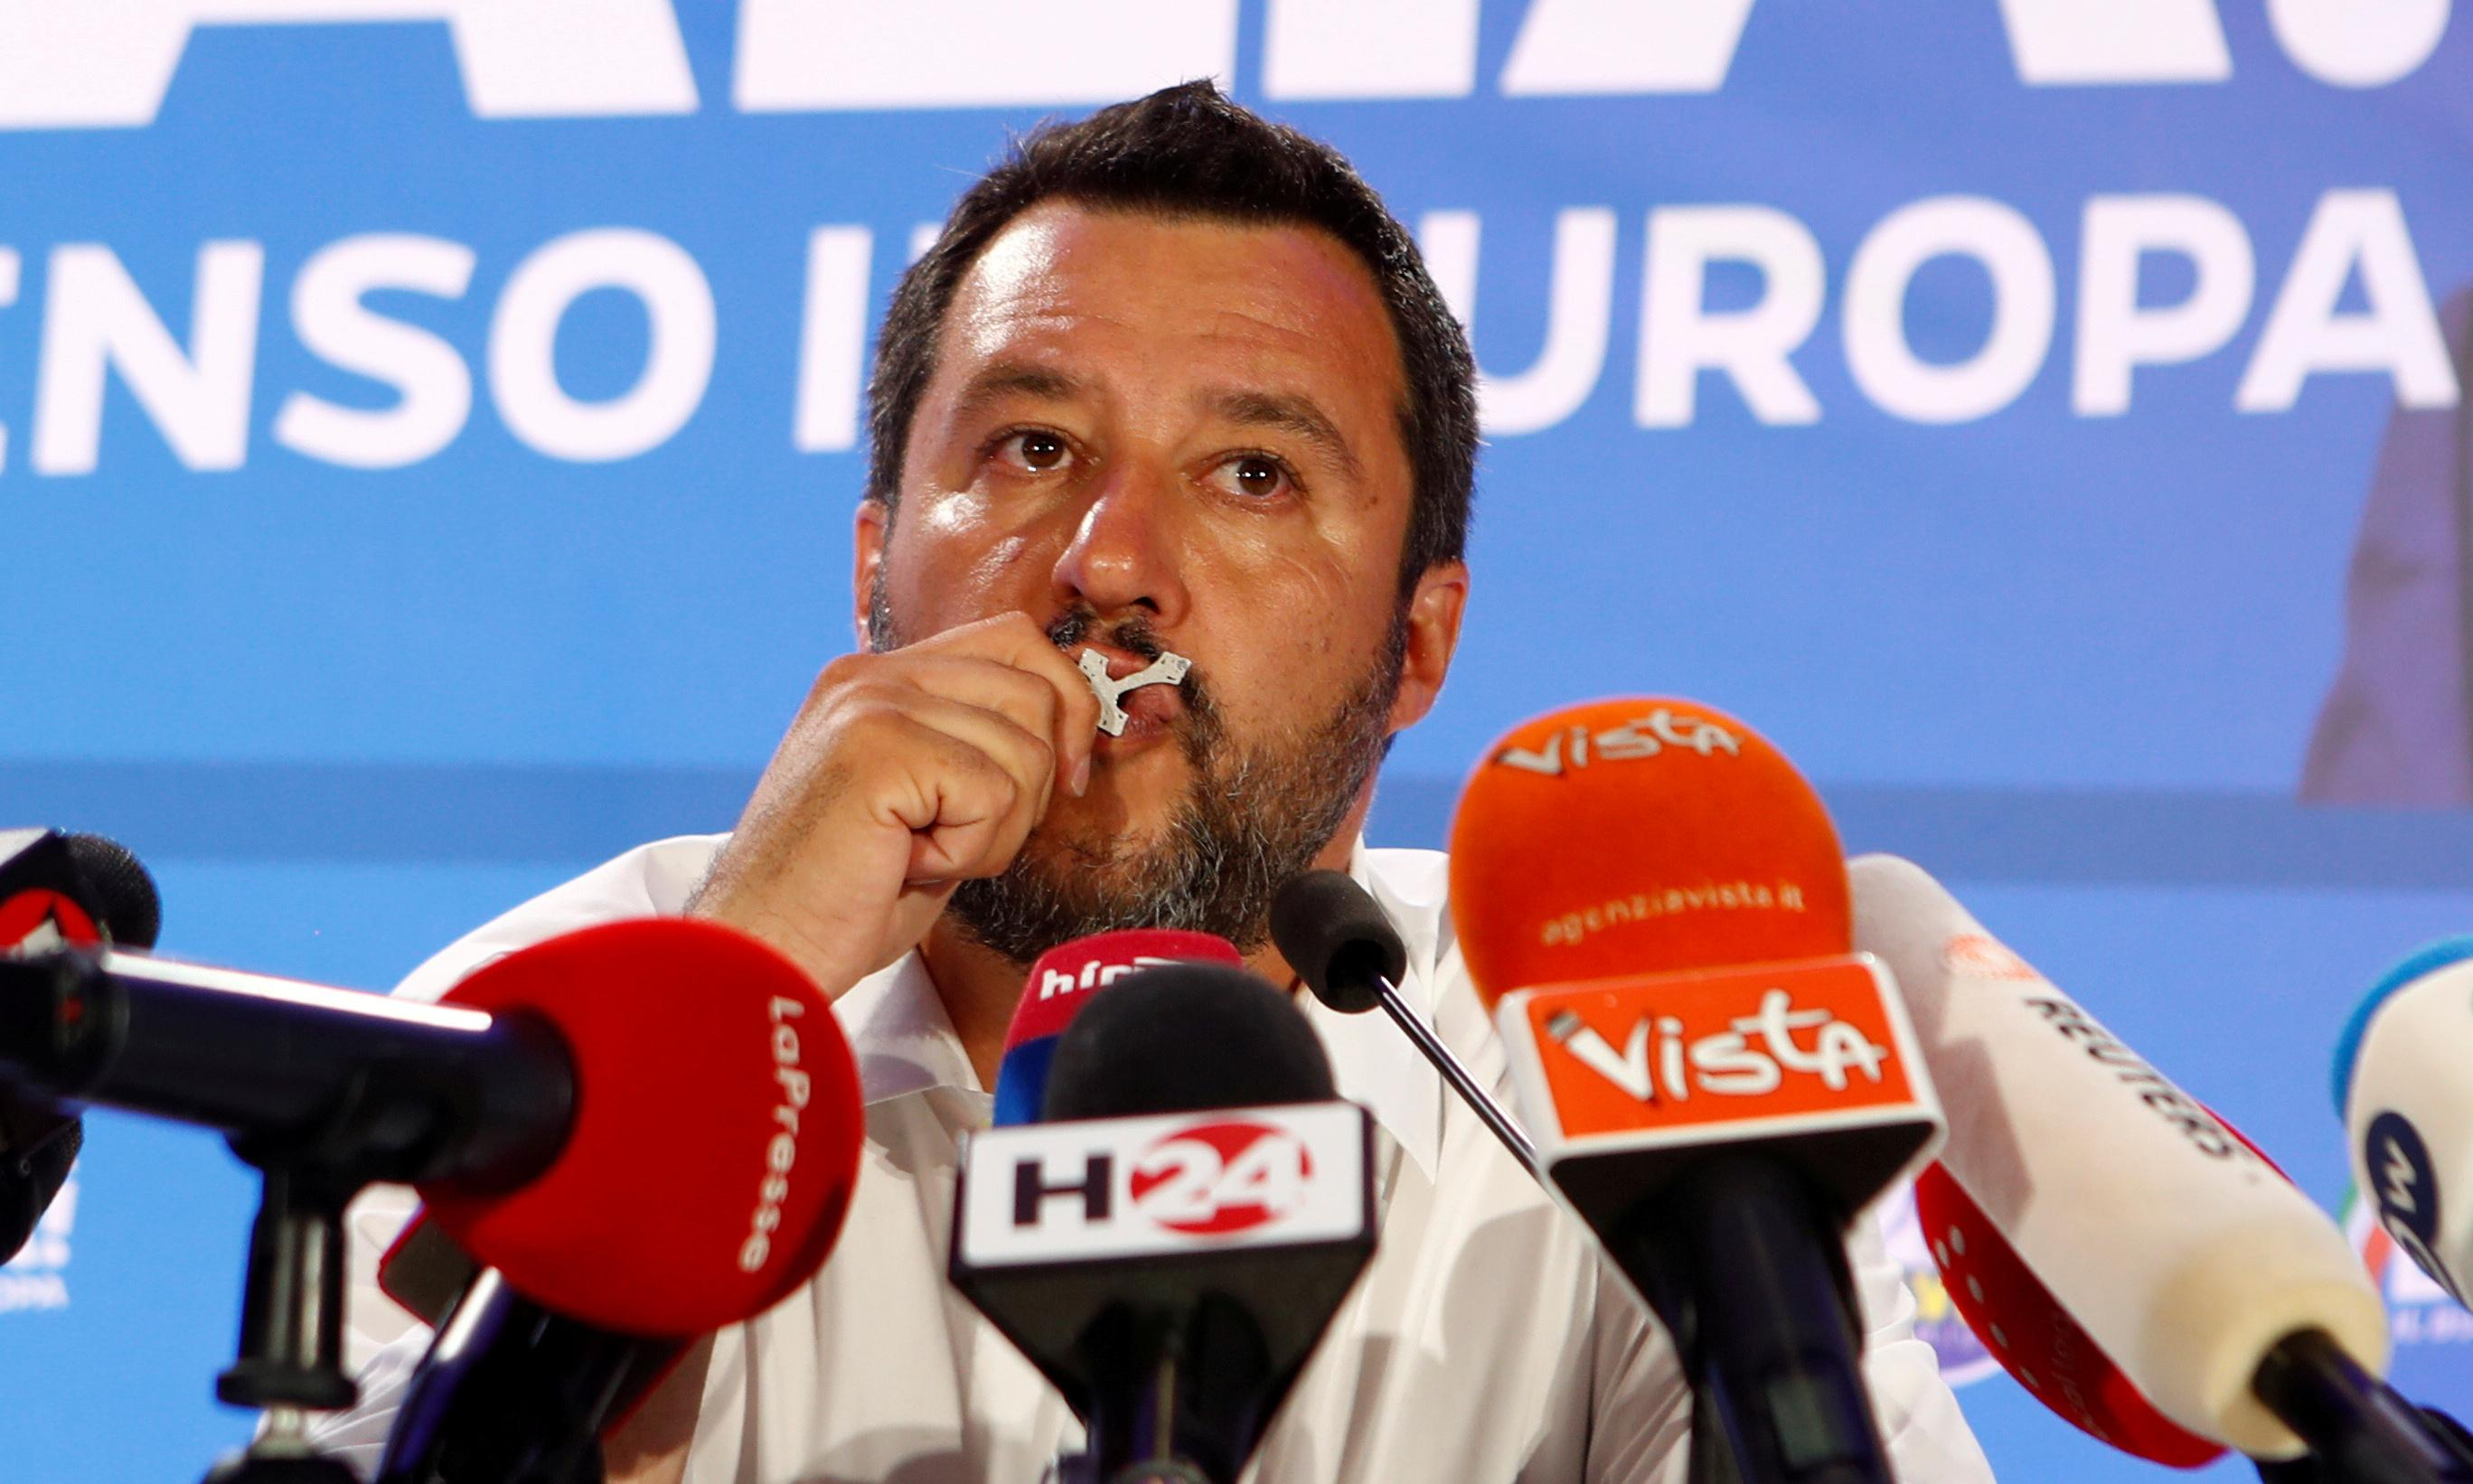 Salvini's far-right party tops Italy's EU election polls